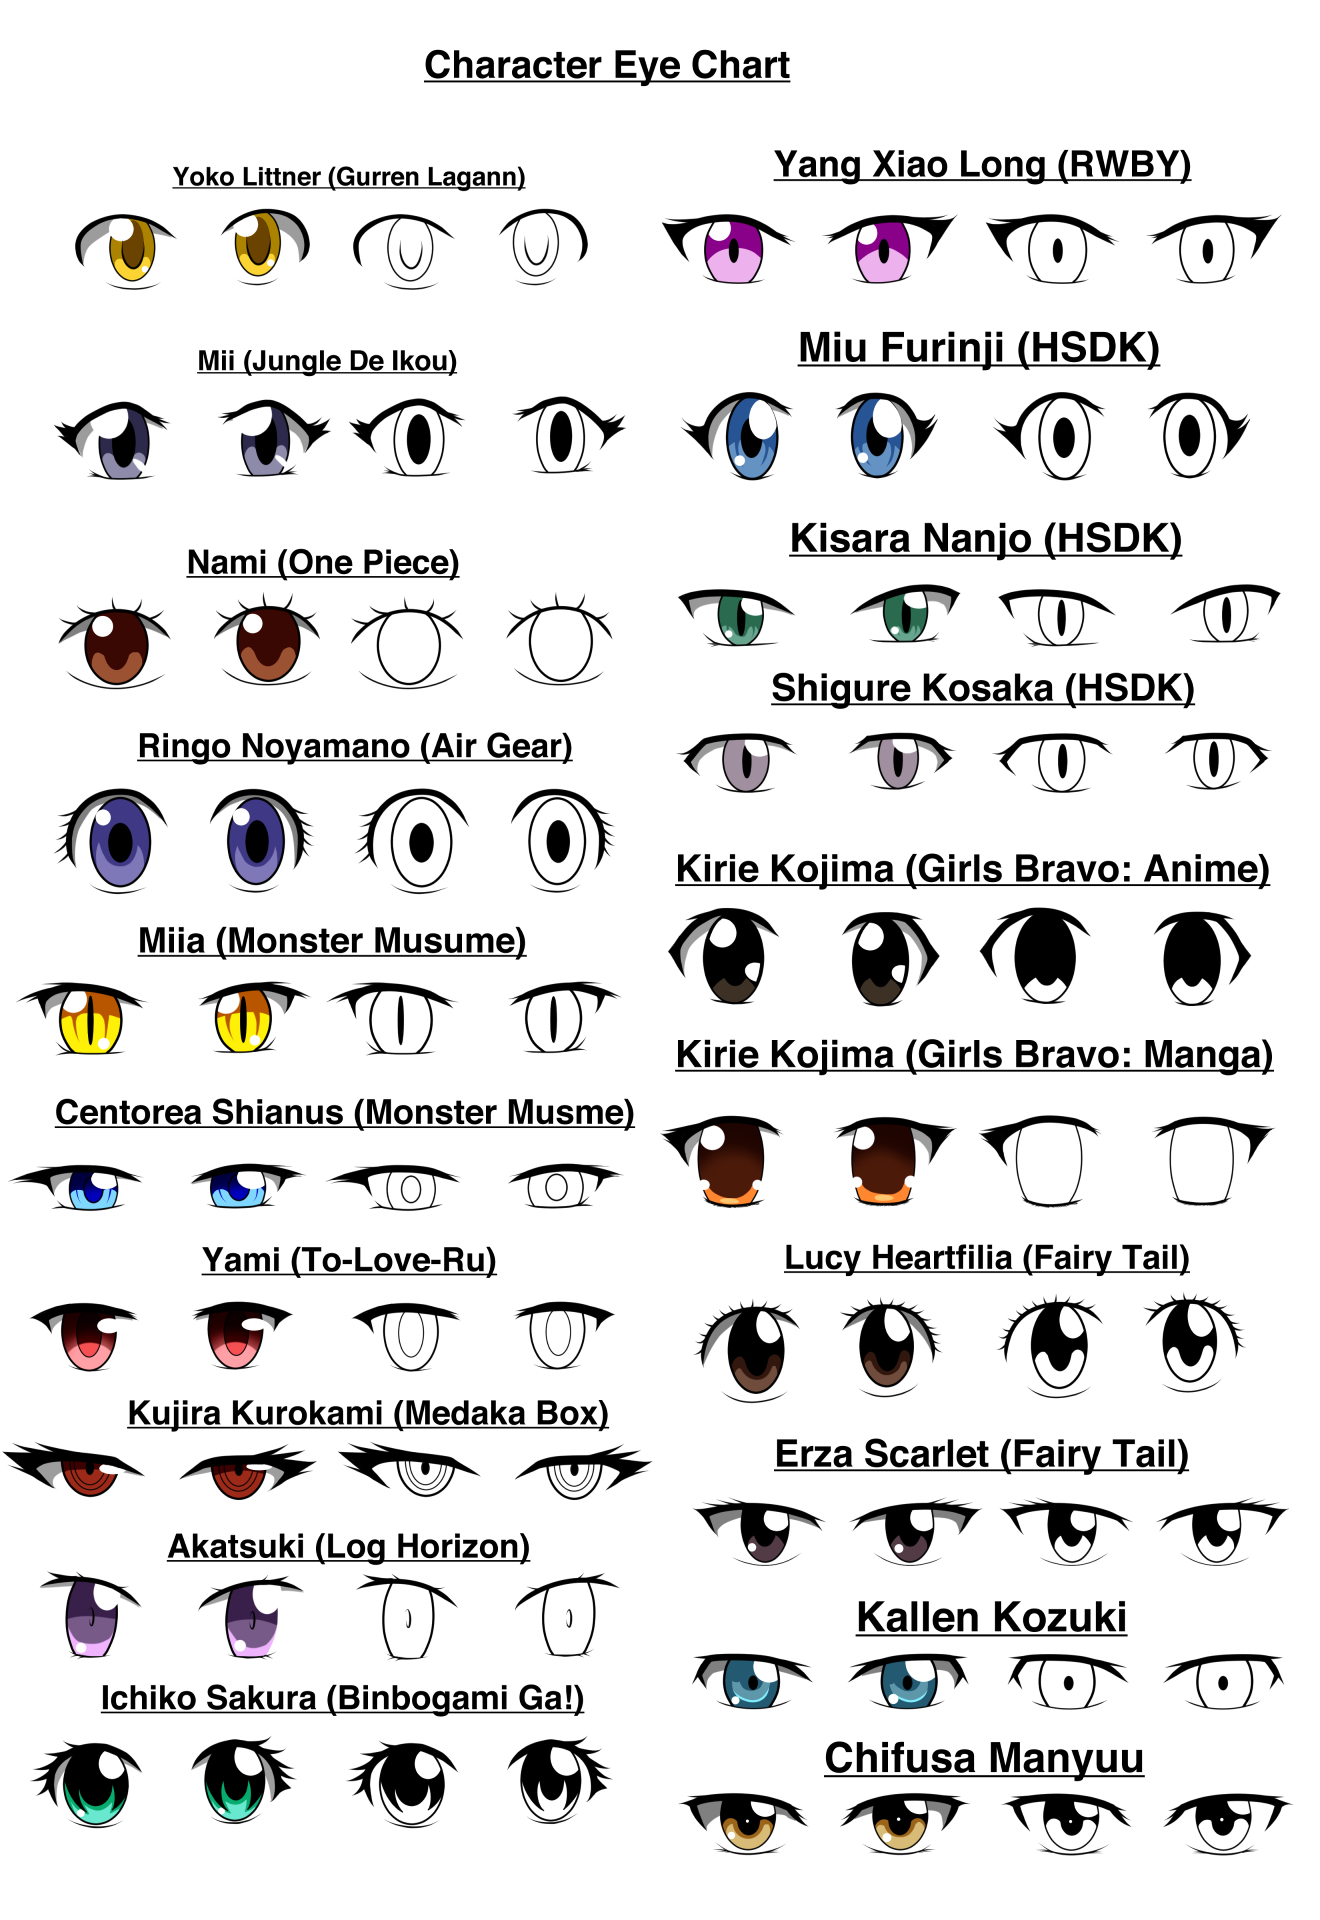 Anime Characters With 3 Eyes : Character eye chart page by oxdarock on deviantart